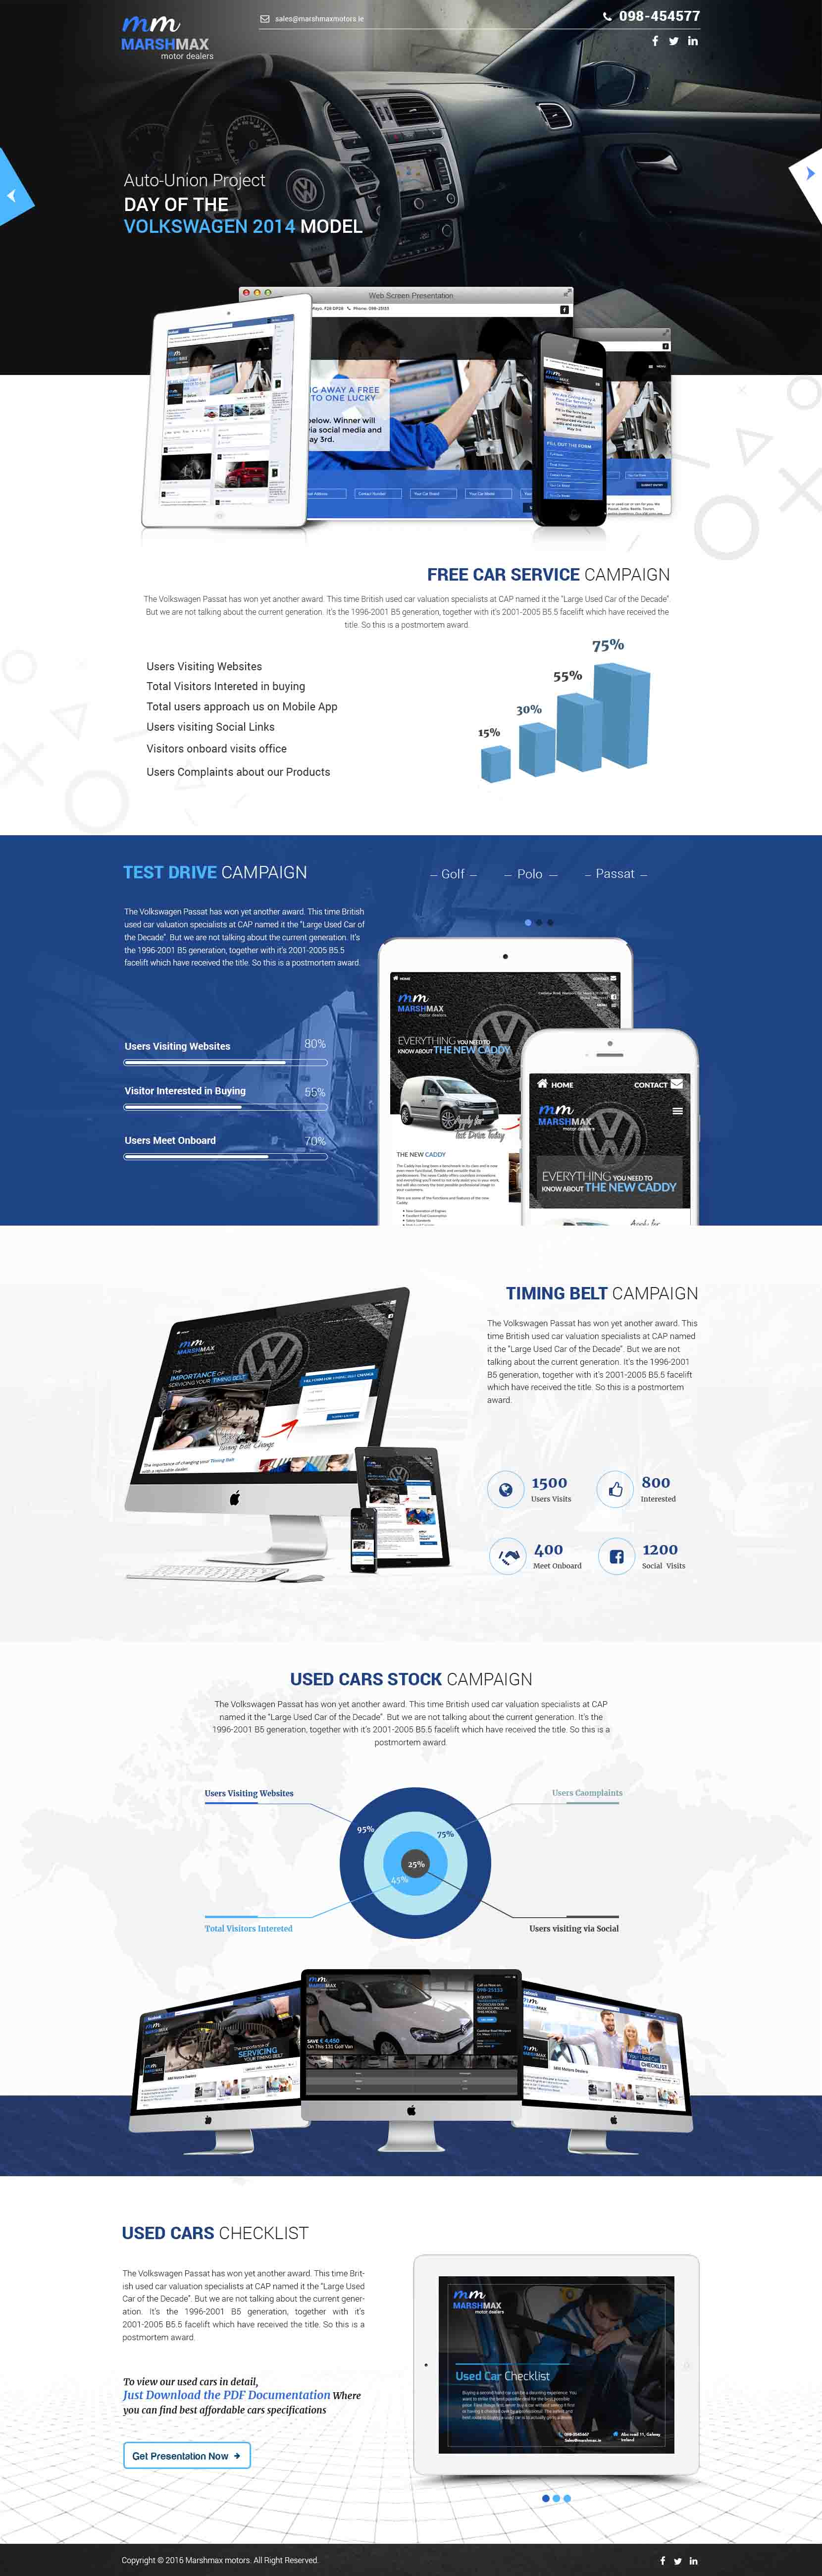 incipit solutions automobiles website design